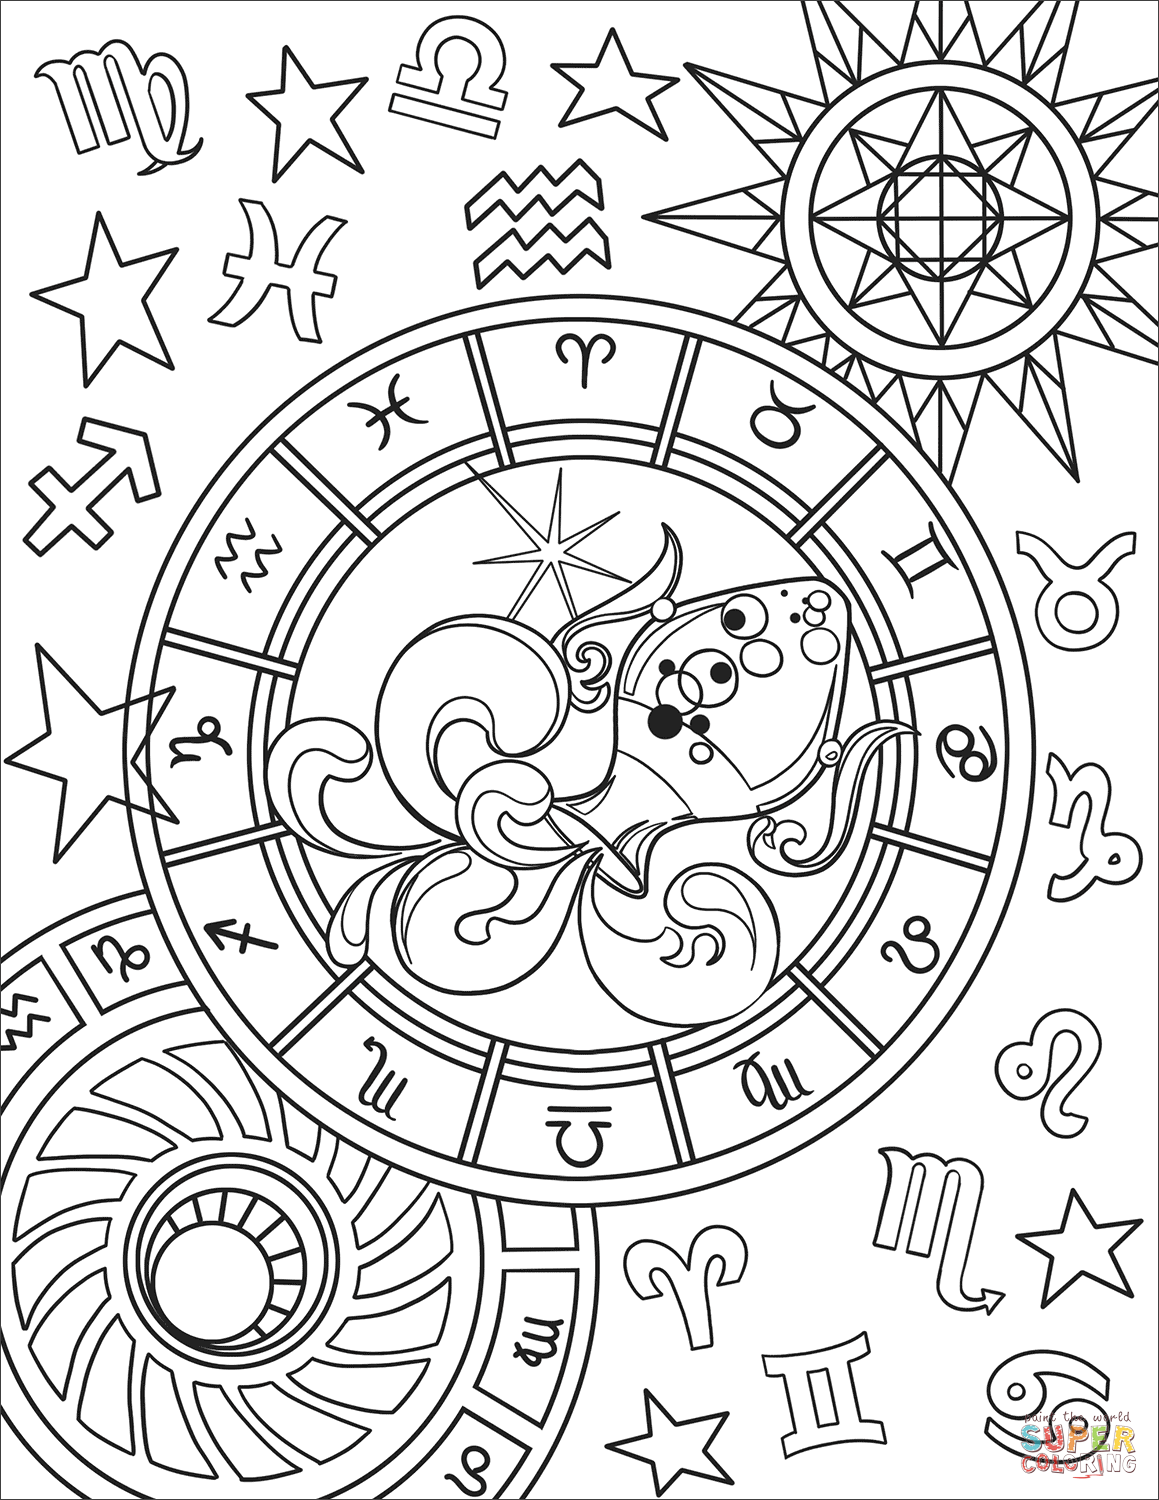 Aquarius Zodiac Sign Coloring Page Free Printable Coloring Pages Zodiac Signs Colors Witch Coloring Pages Coloring Pages